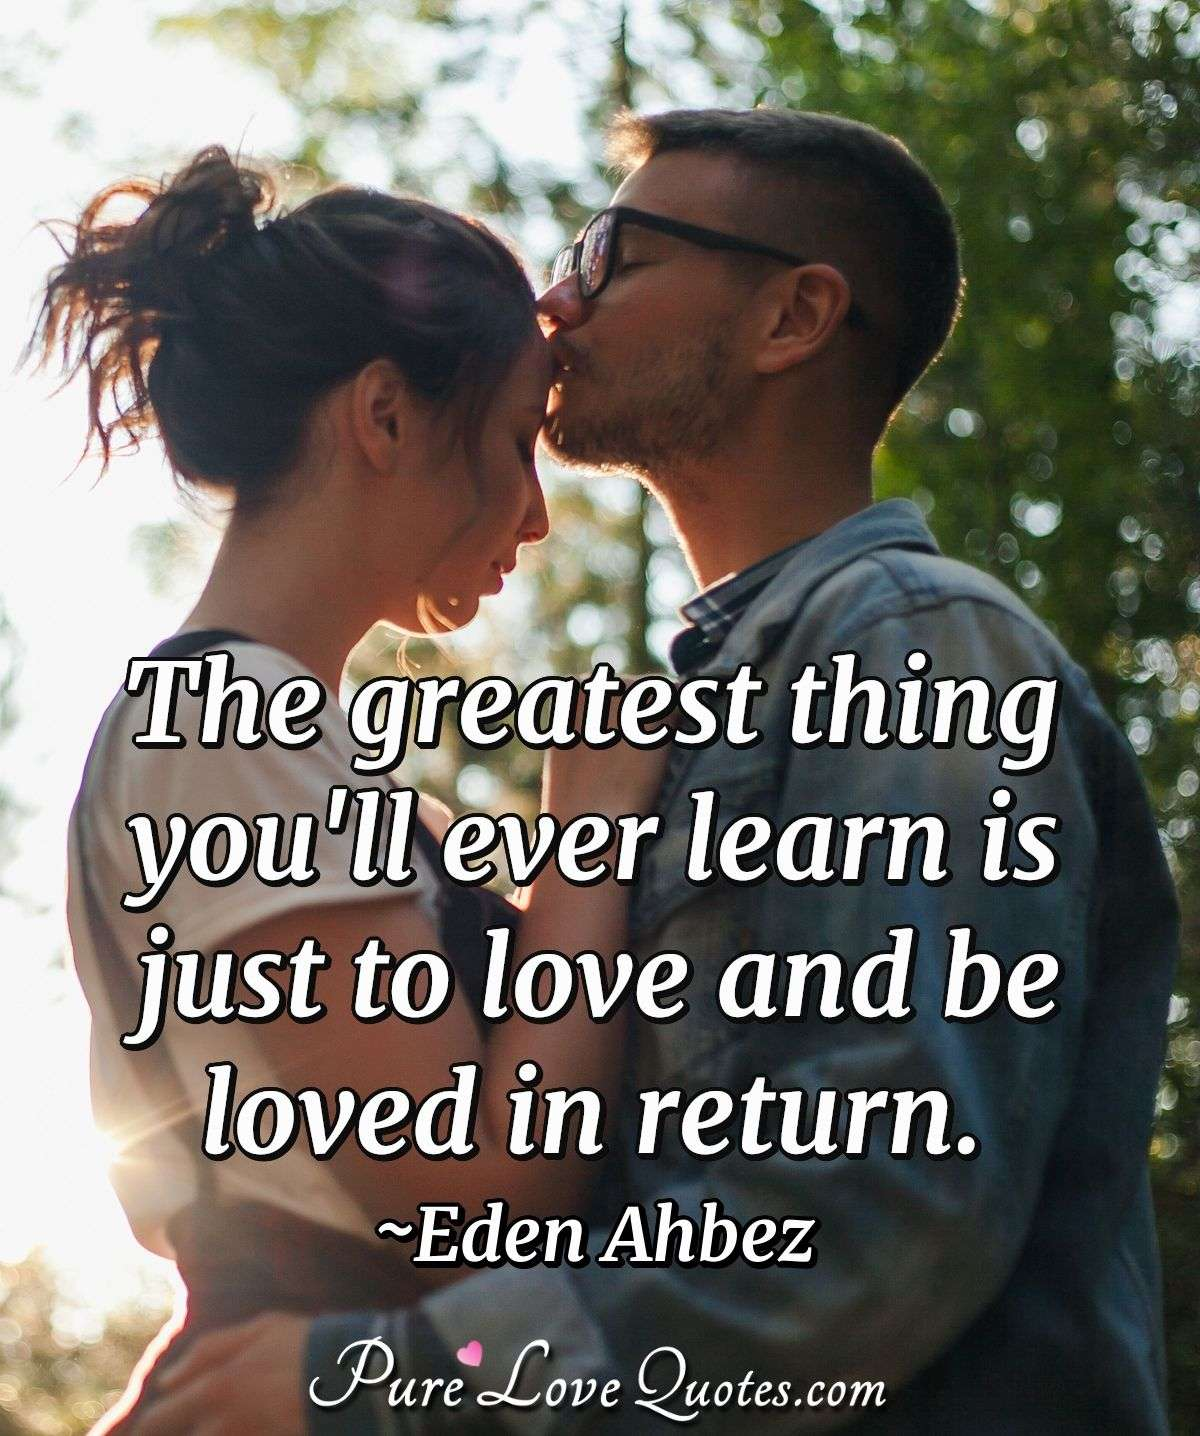 The greatest thing you'll ever learn is just to love and be loved in return. - Eden Ahbez